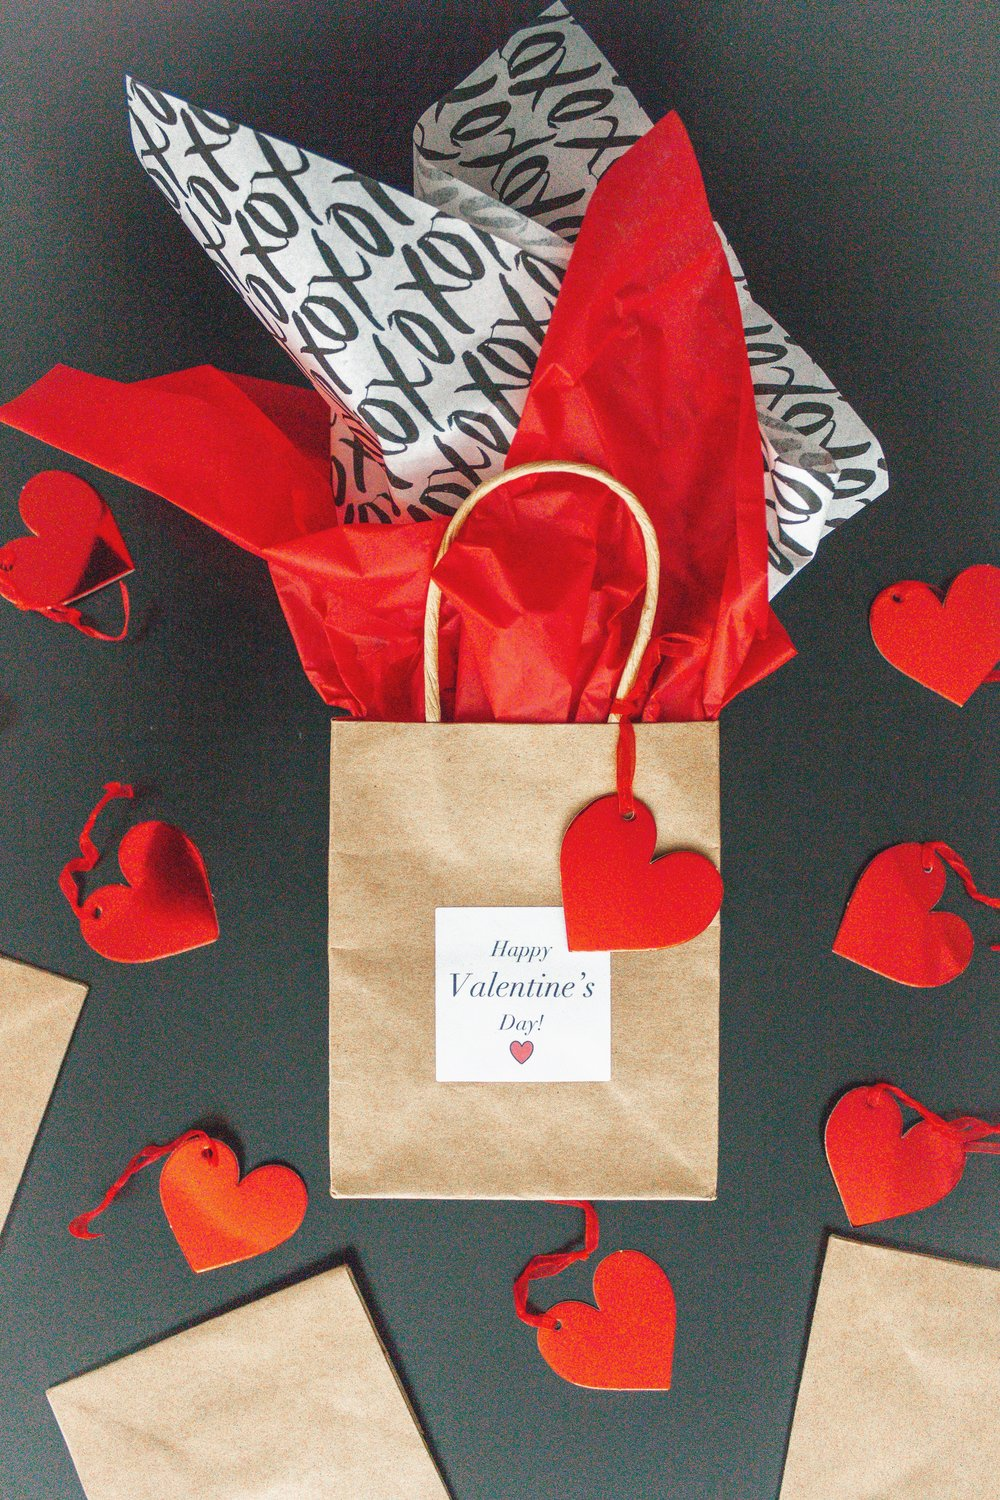 Galentines-day-gifts-for-friends-DIY-09.jpg